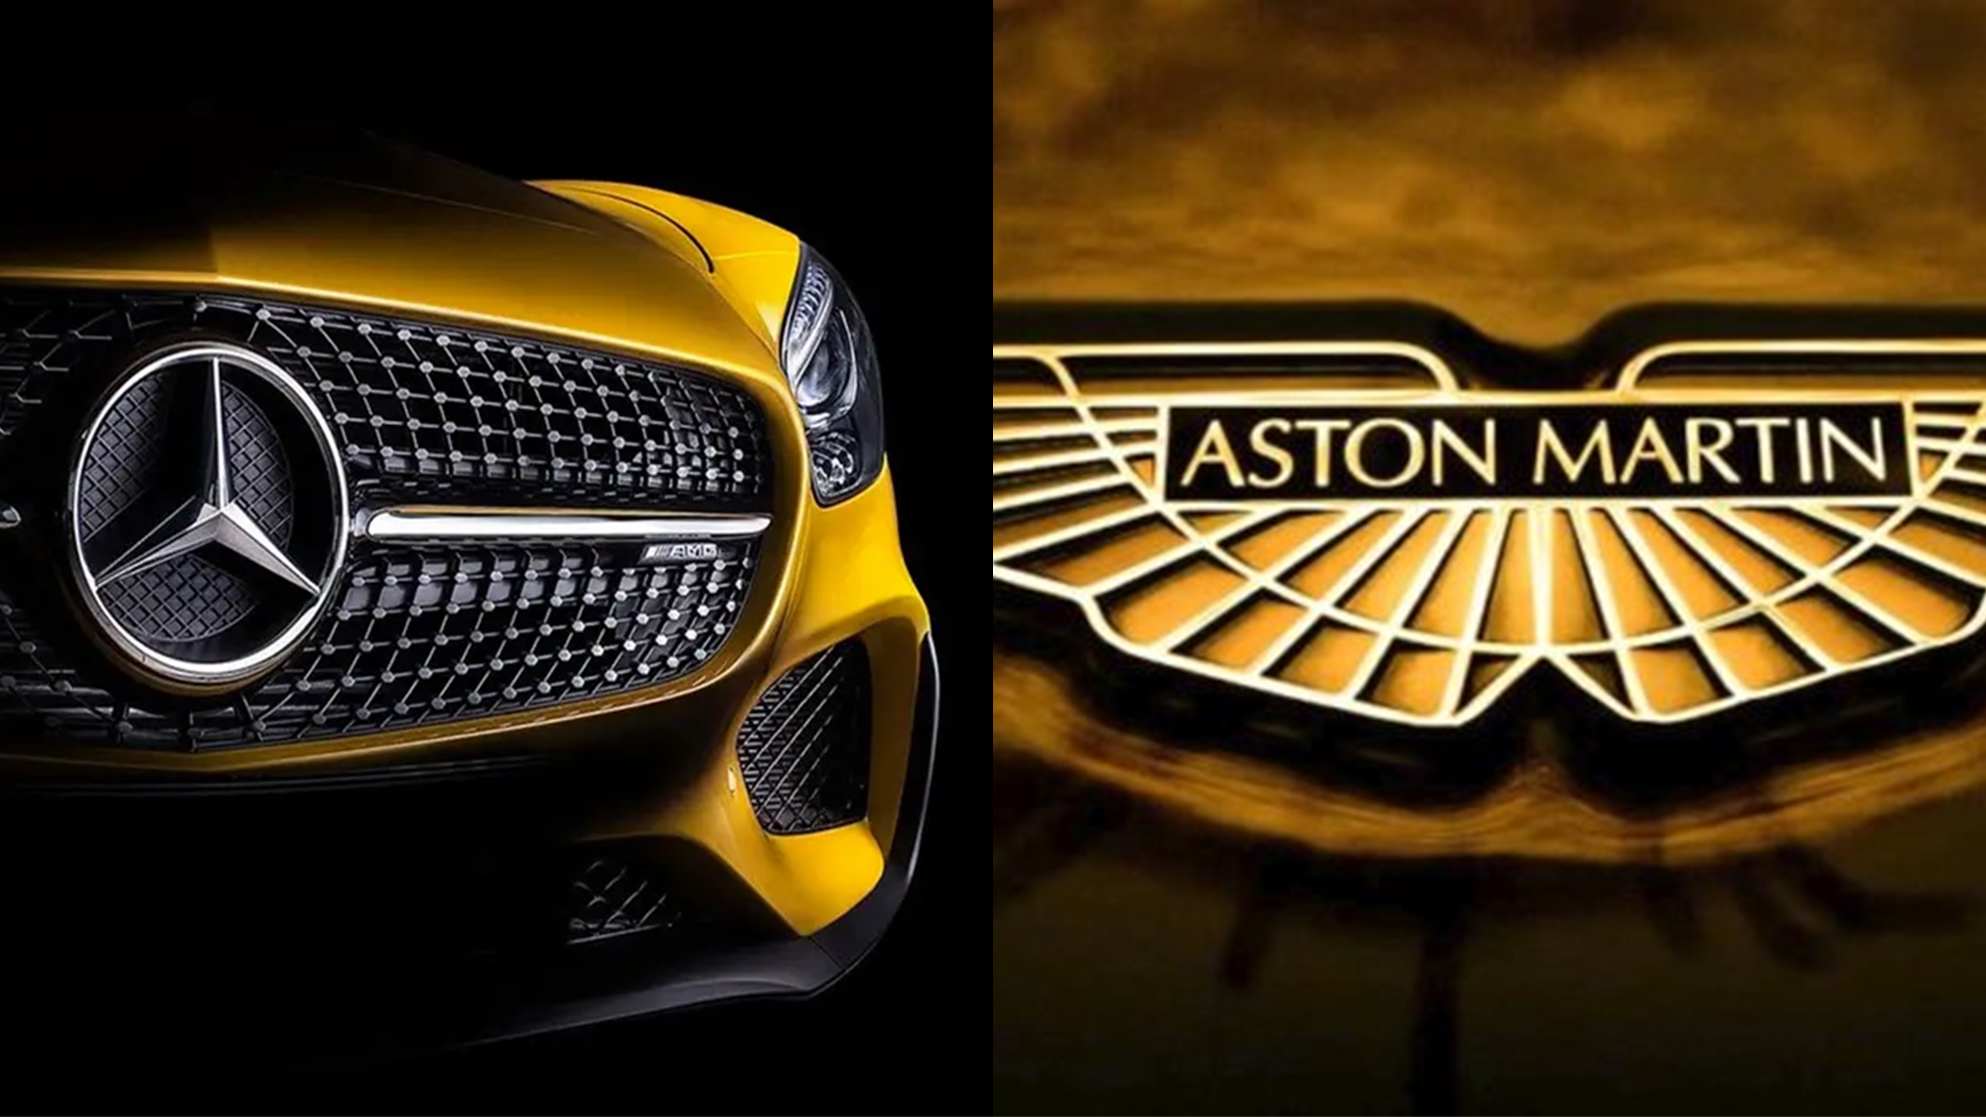 Mercedes-Benz AG and Aston Martin to expand technology partnership and shareholding